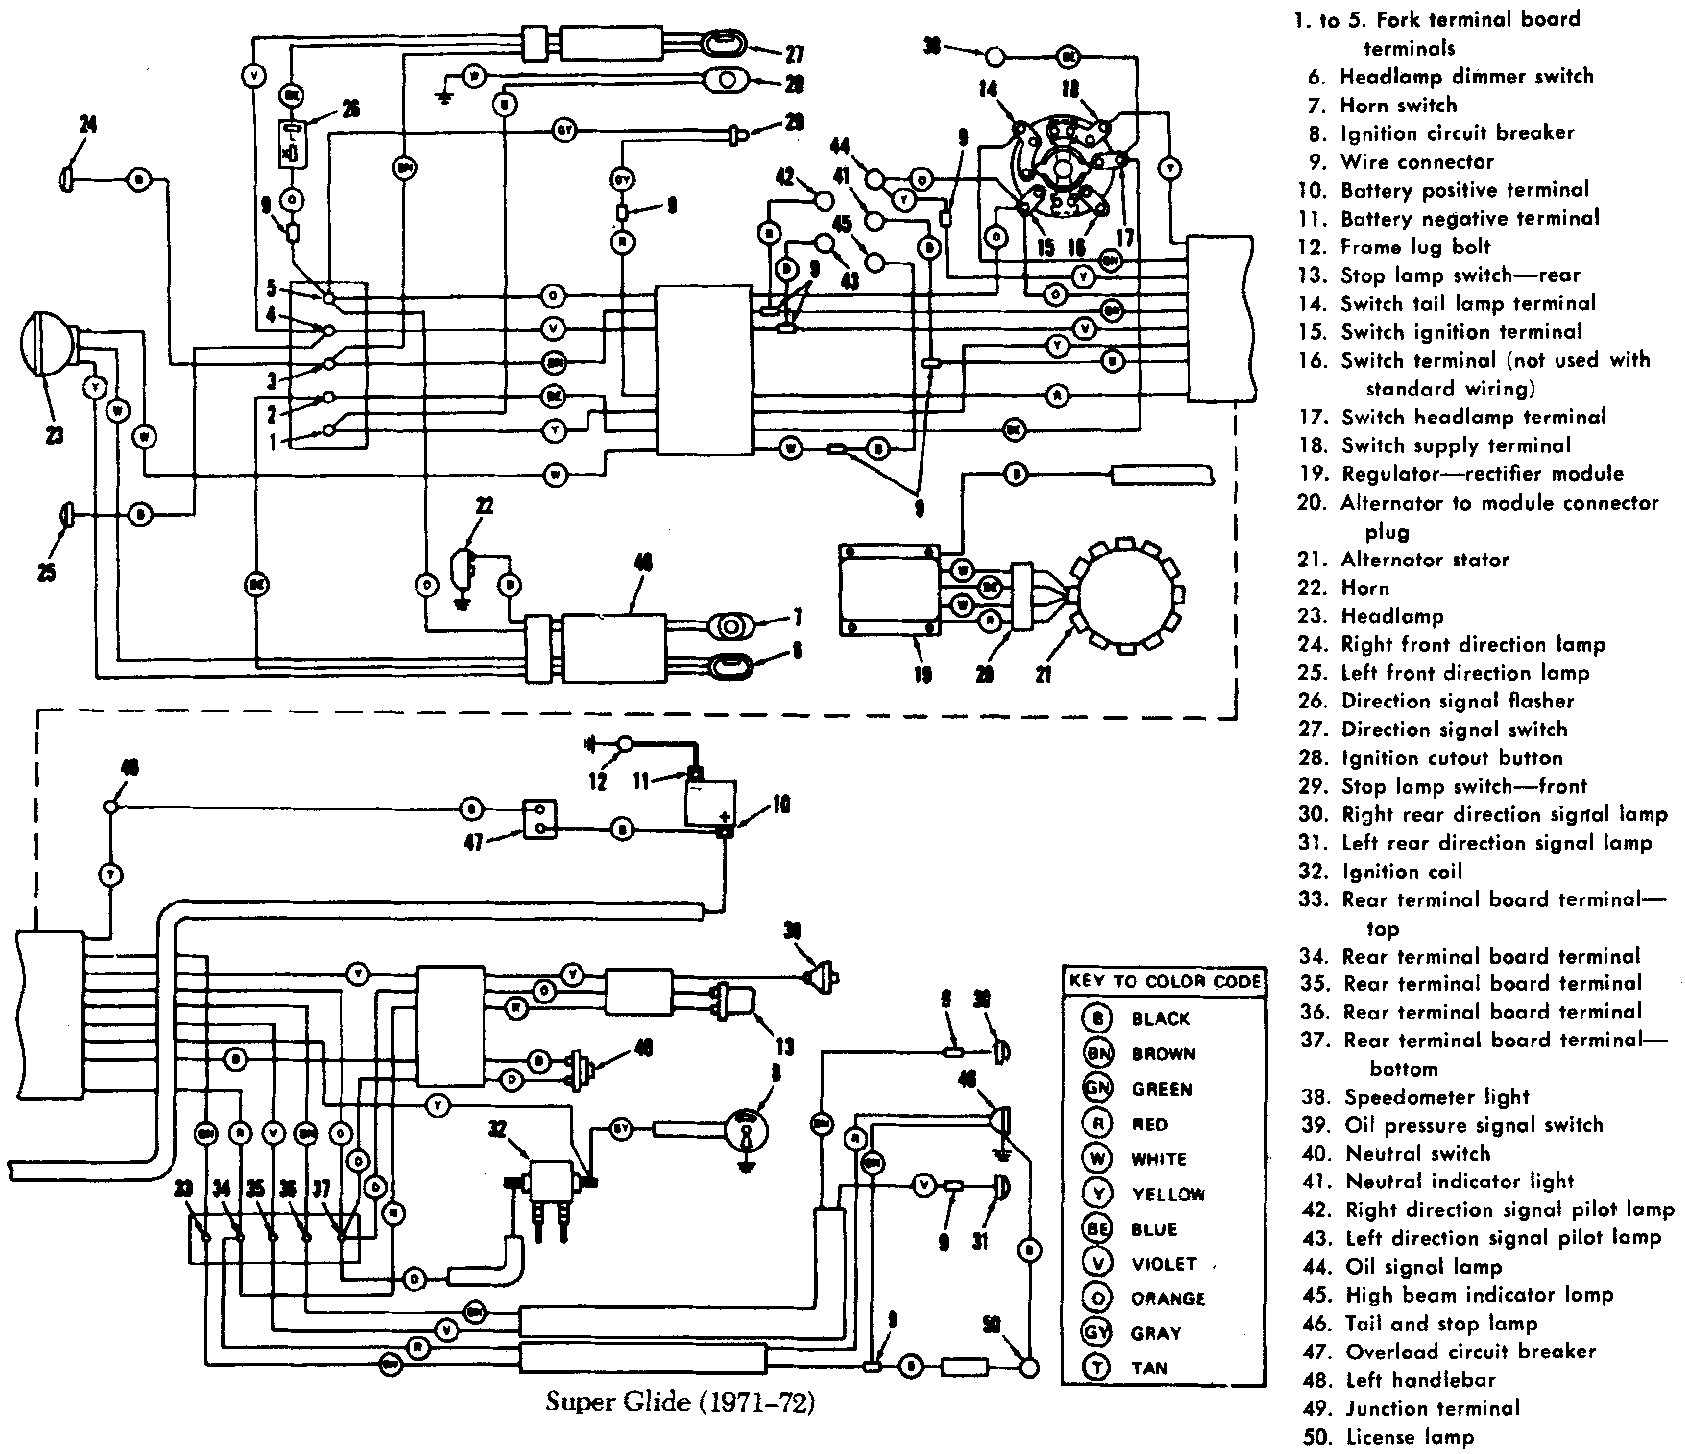 79 shovelhead wiring diagram 1997 international 4700 starter 1976 harley davidson library